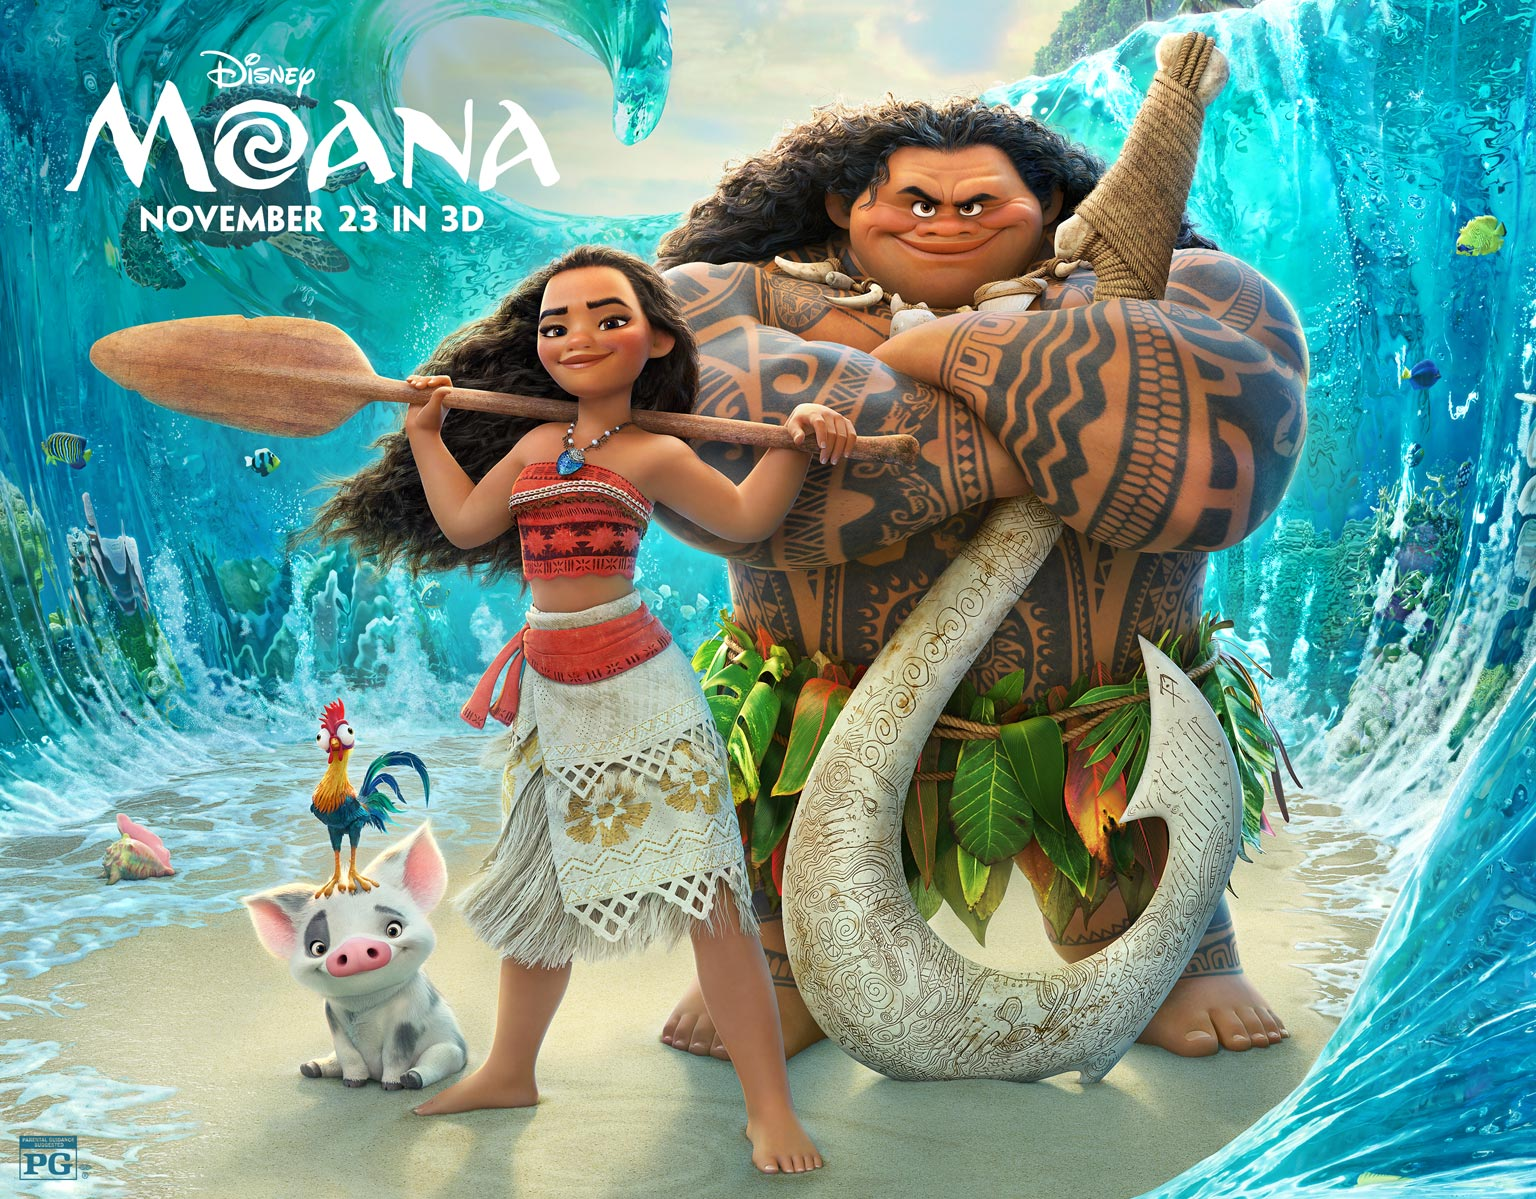 Reasons You Should Be Hyped for Disney's 'Moana'